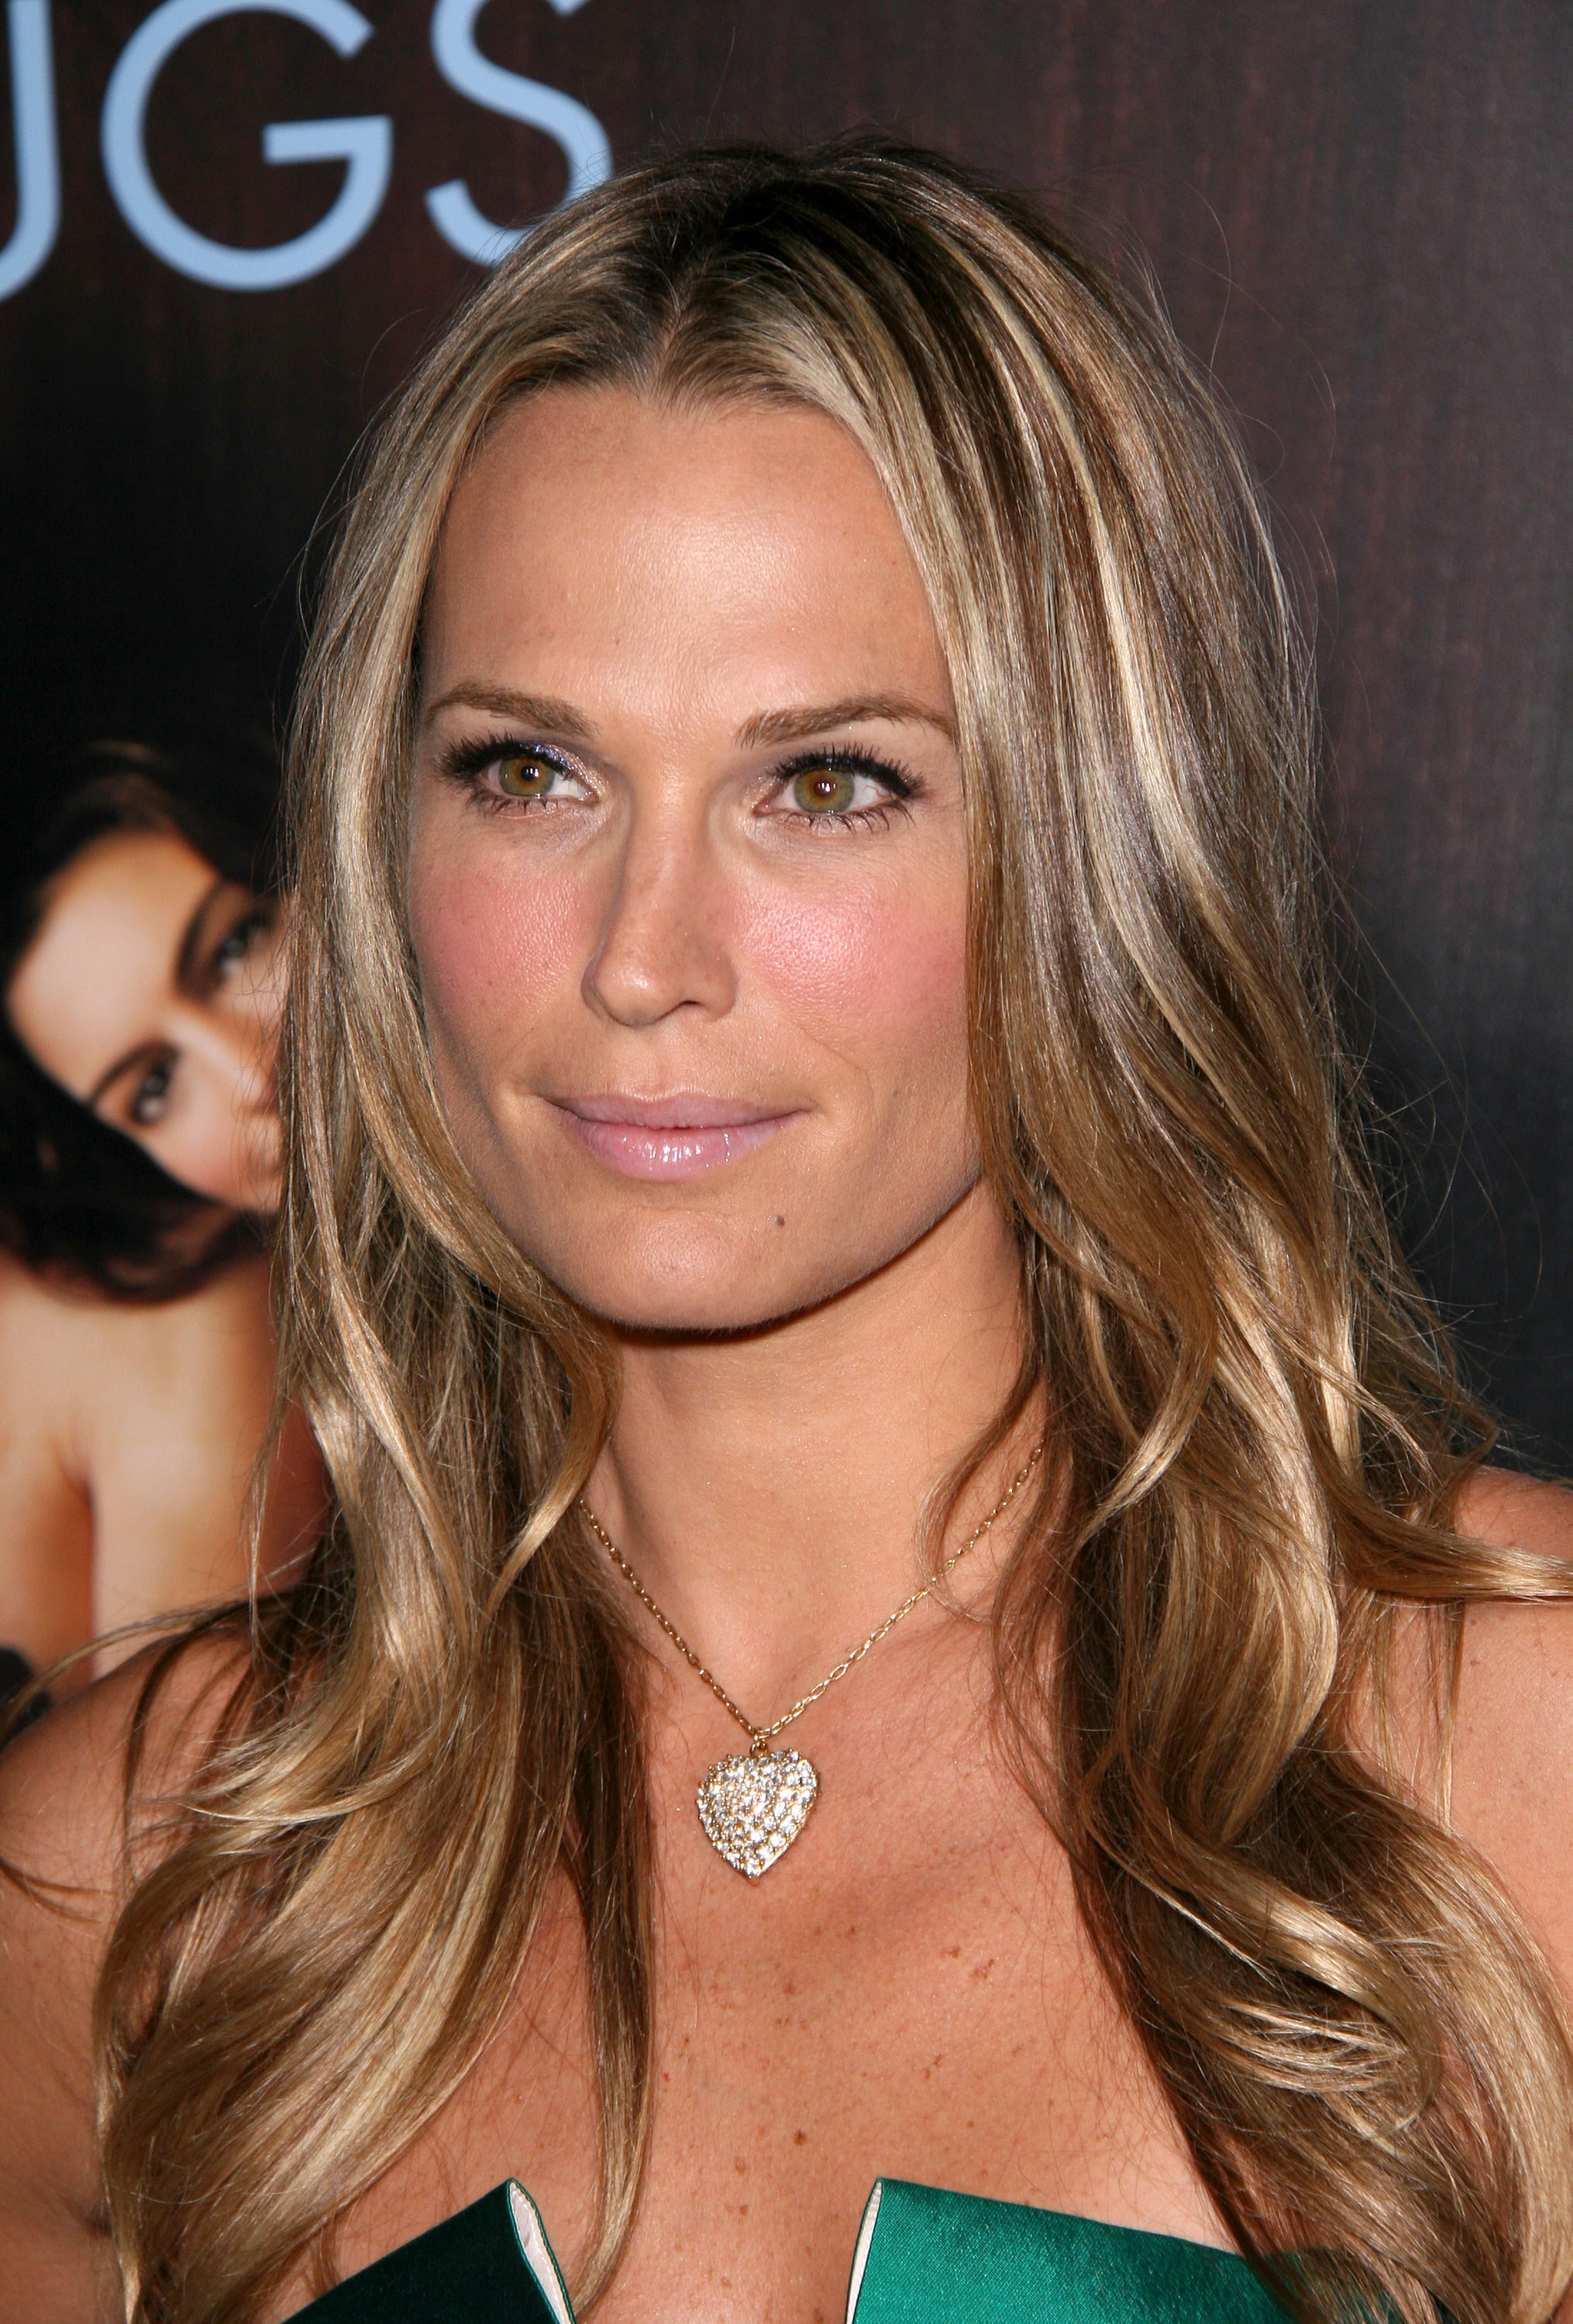 Molly Sims Photo 75 Of 272 Pics Wallpaper Photo 302870 Theplace2